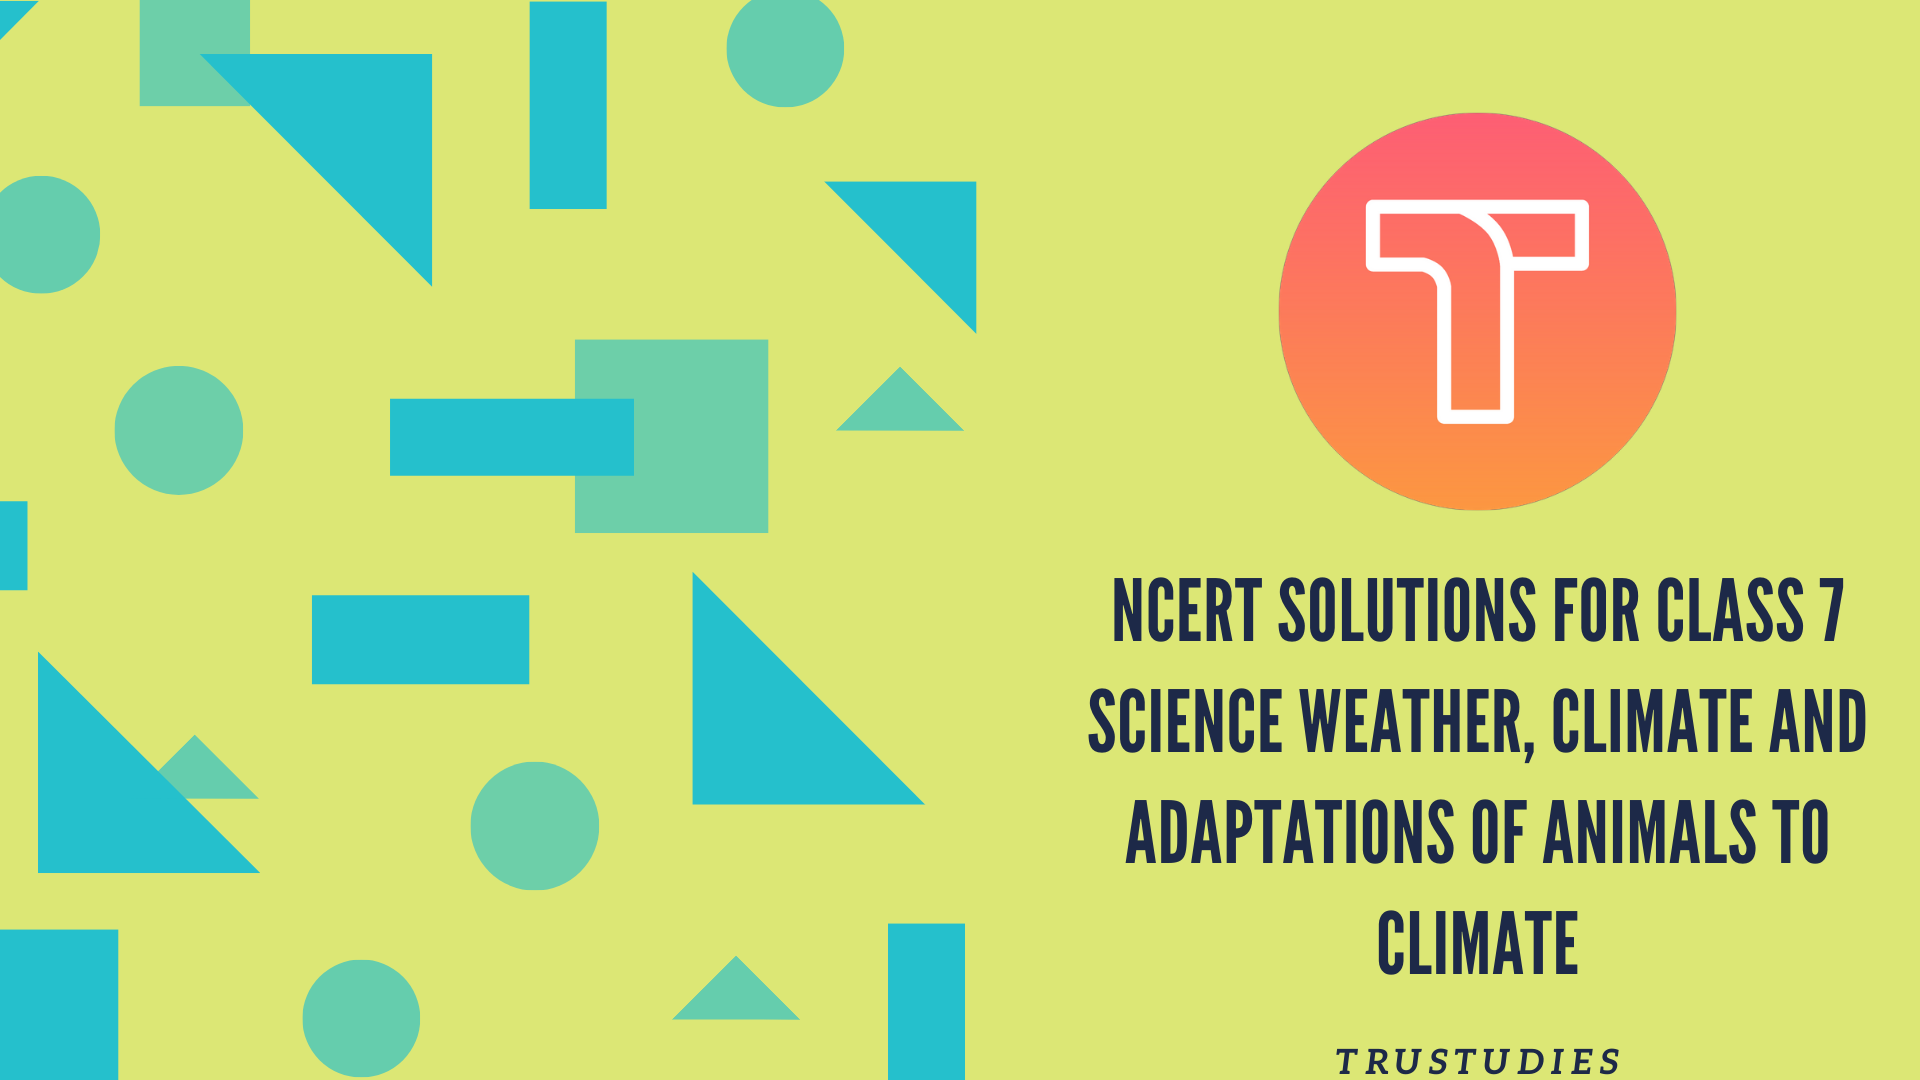 NCERT solutions for class 7 science chapter 7 weather climate and adaptations of animals to climate banner image